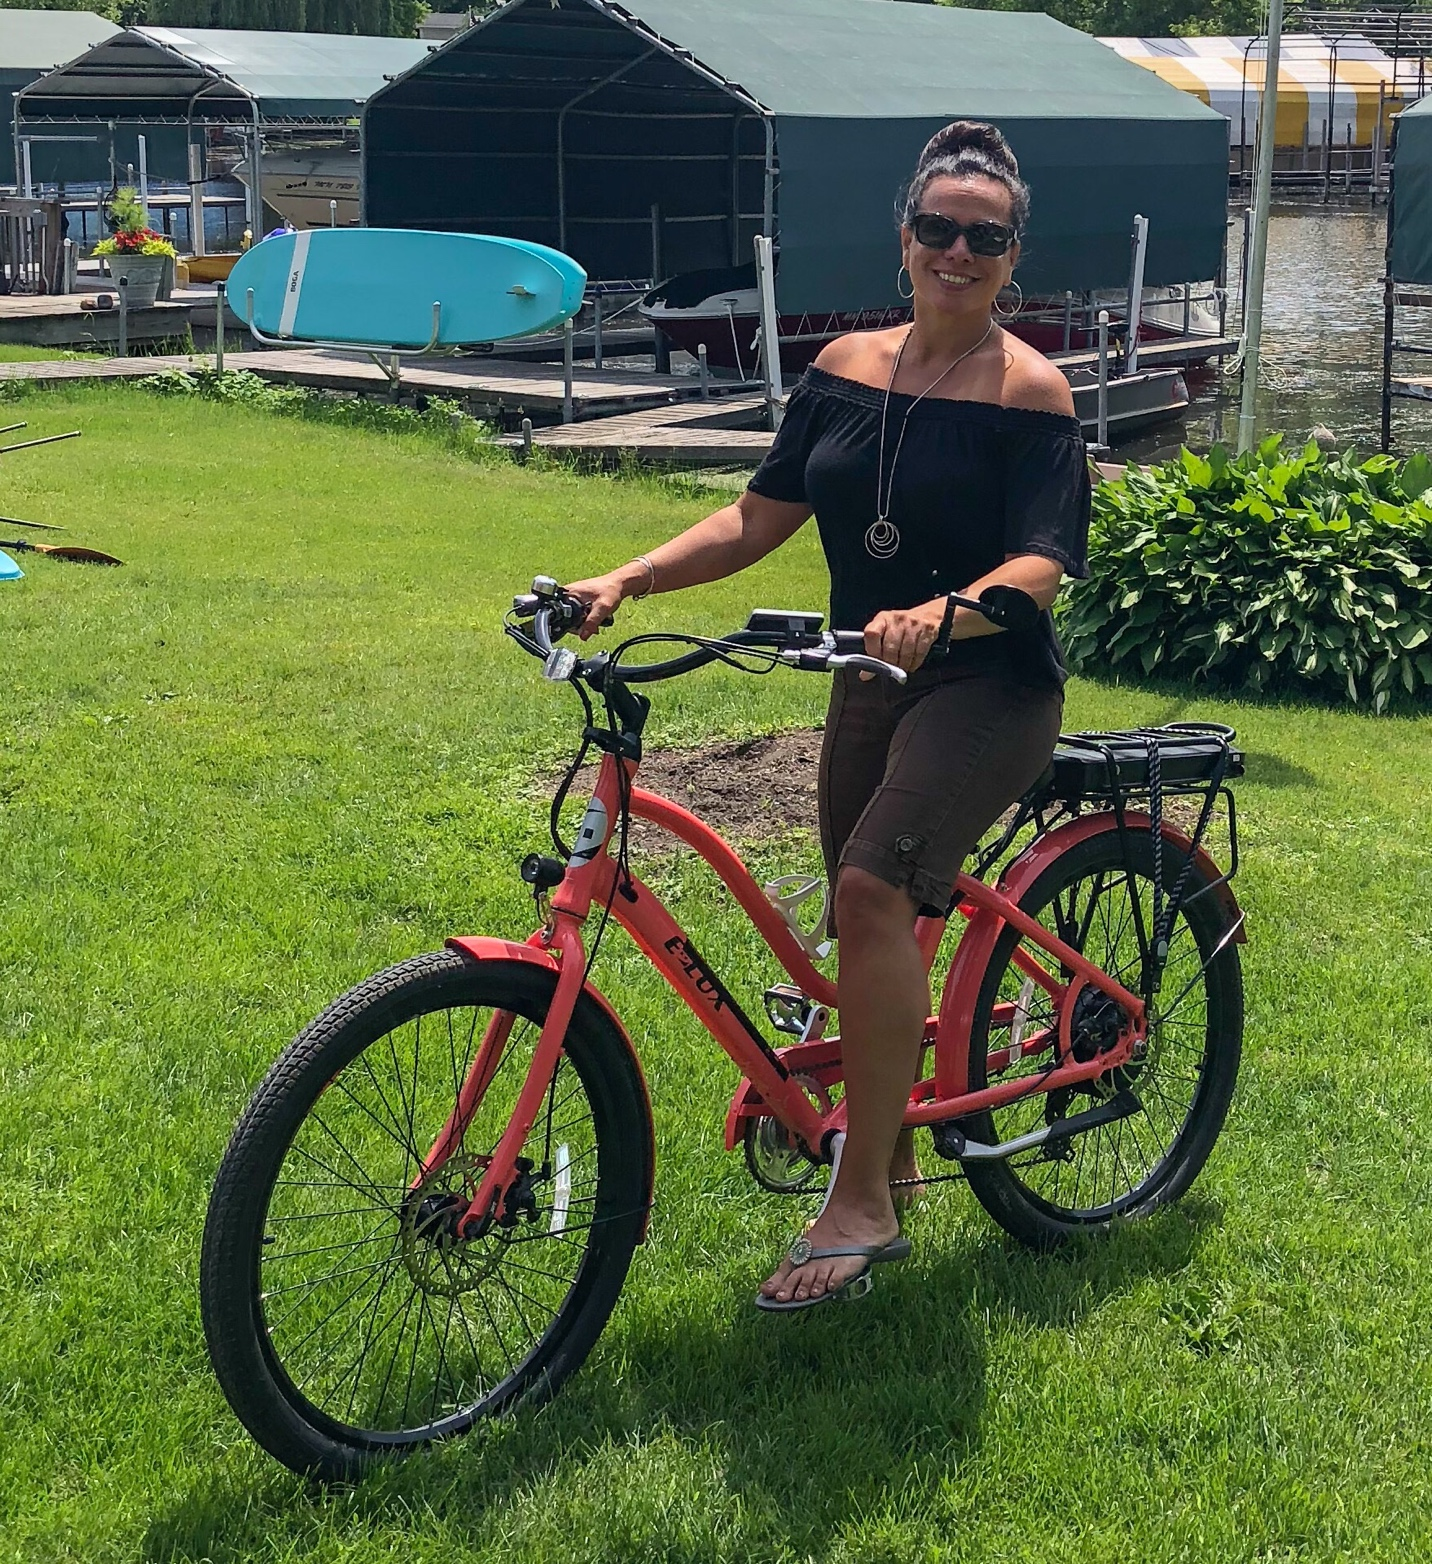 Woman riding bike and exploring Lake Minnetonka